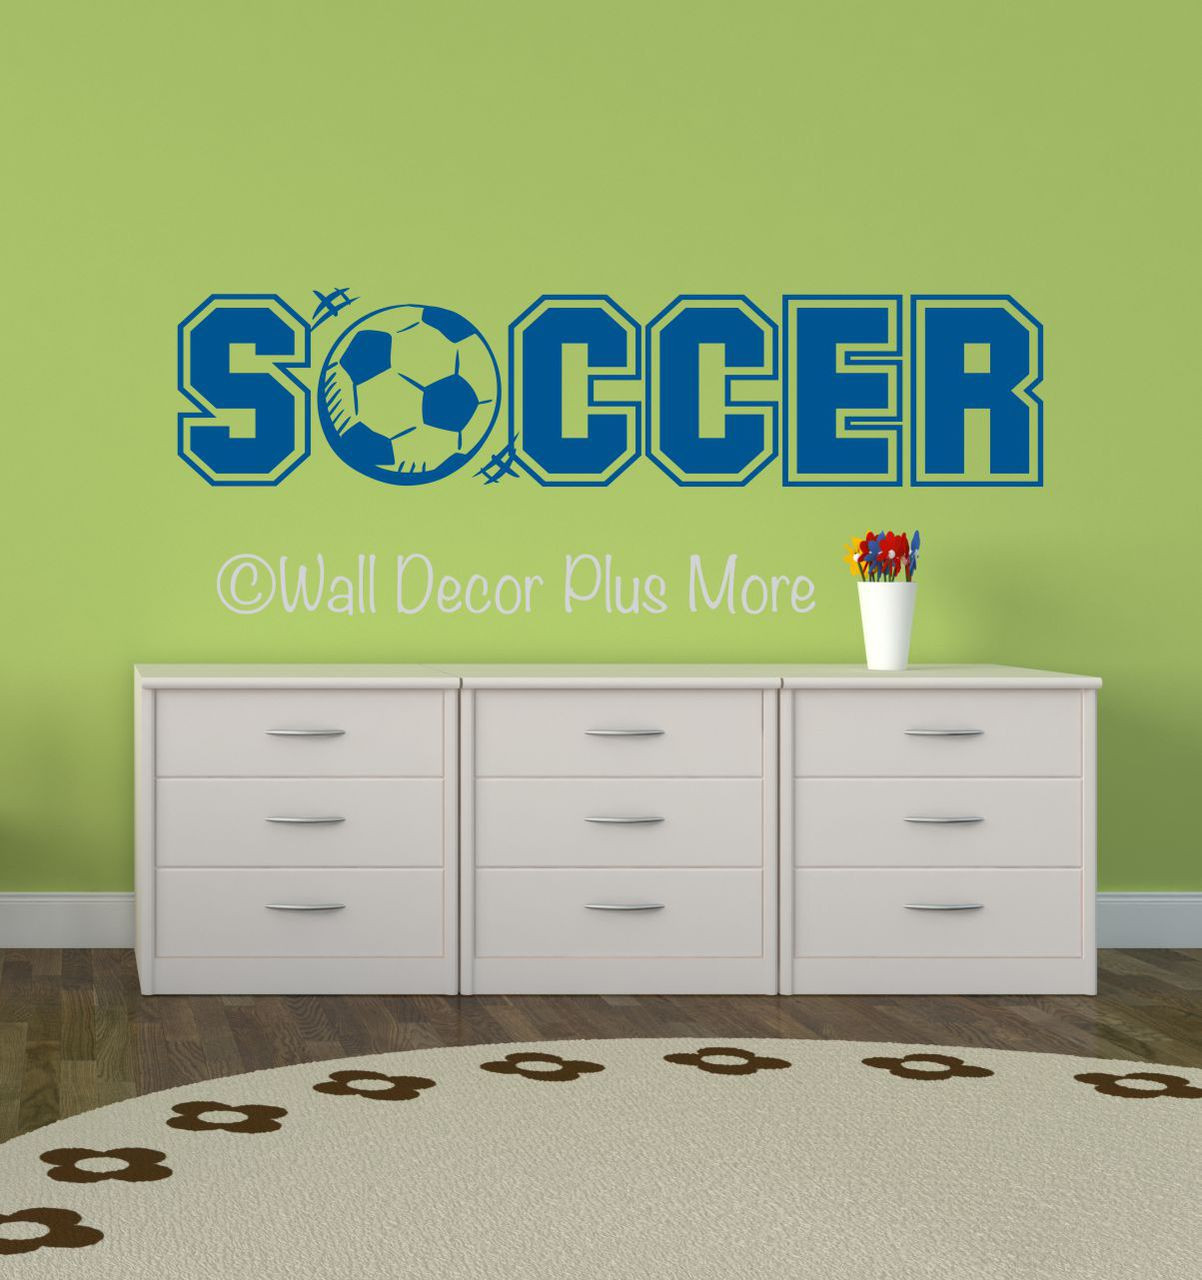 Soccer lettering with sports ball wall art vinyl sticker decals soccer sports wall decals stickers for boys cool room decor loading zoom amipublicfo Images